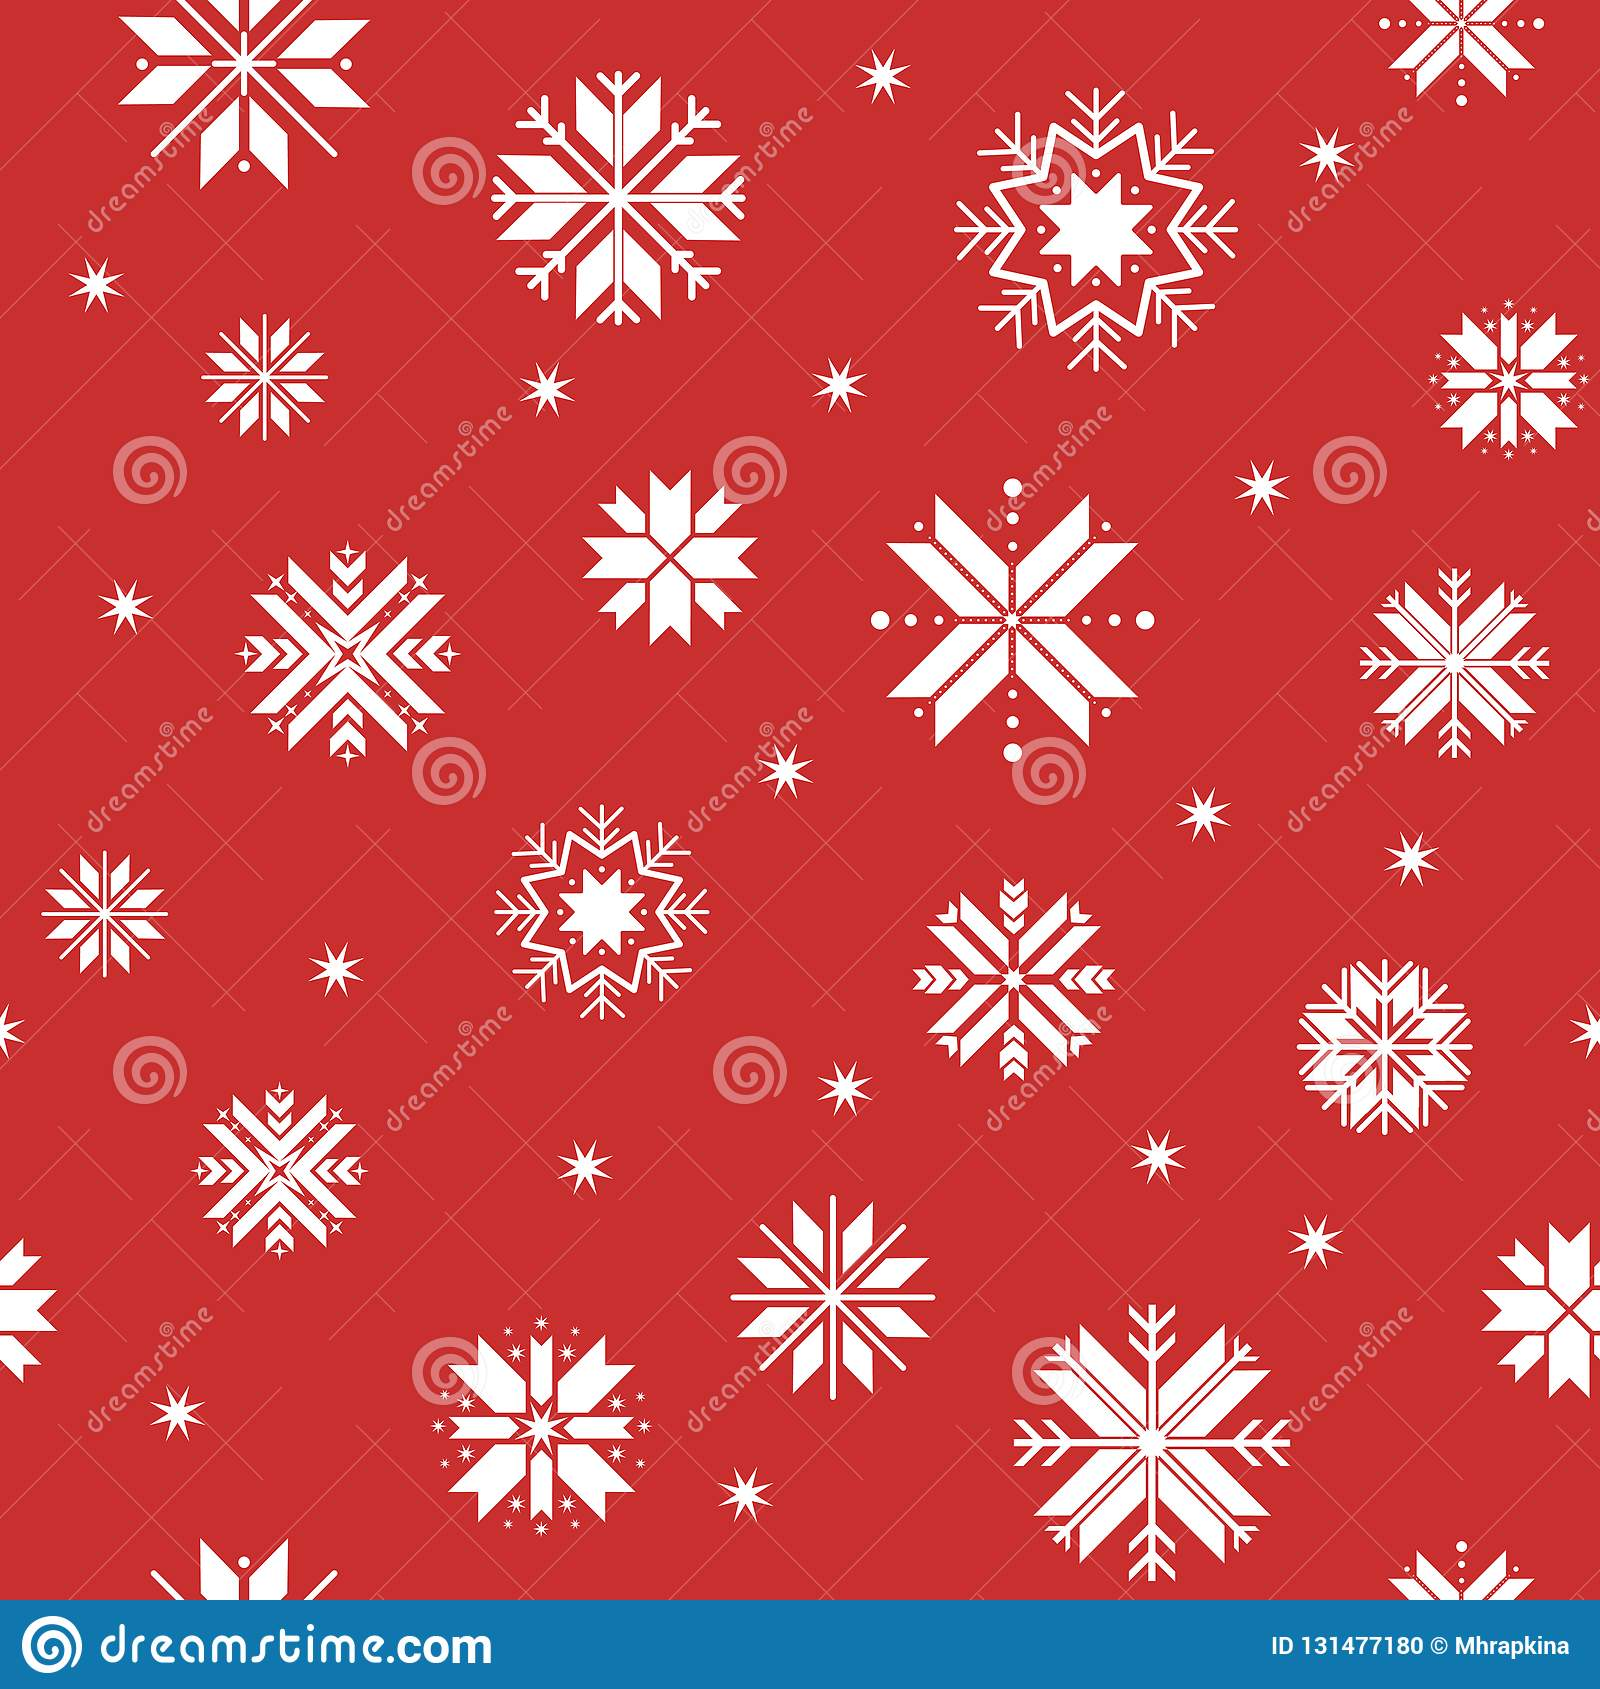 c2a6004b487c Seamless christmas pattern with snowflakes. traditional sweater pattern  with white geometric snowflakes on red background